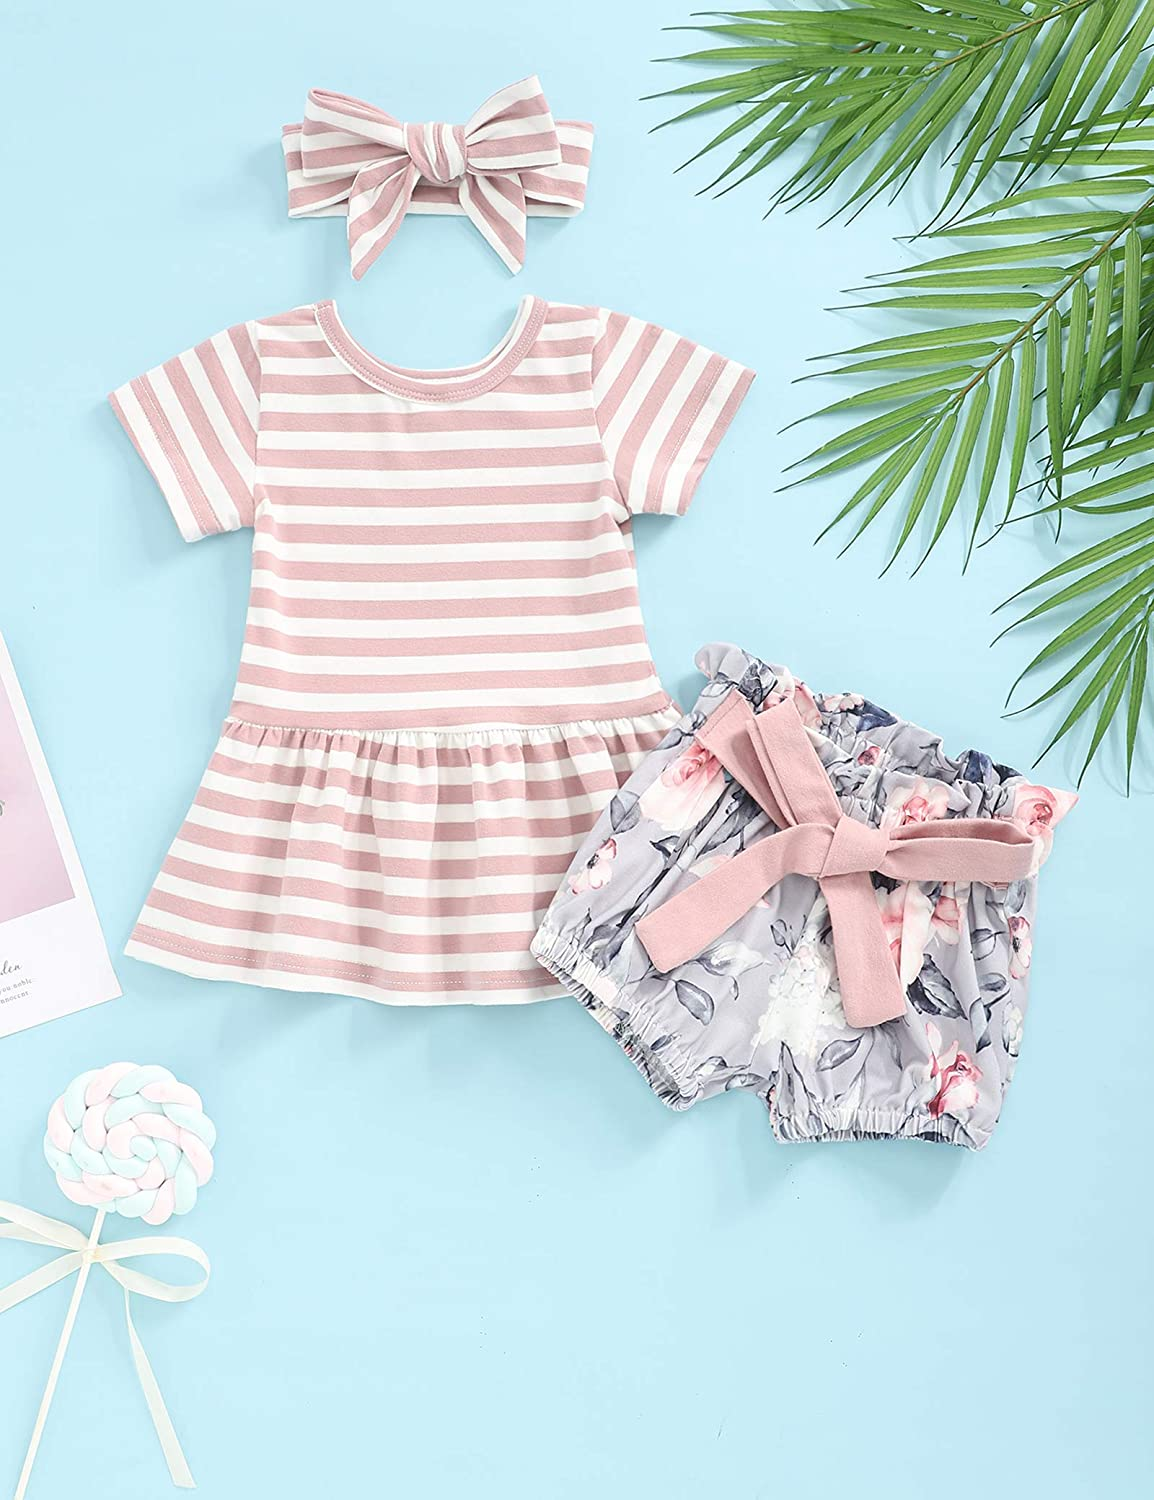 bilison Baby Girl Clothes Little Miss Sassy Pants Romper+Floral Shorts with Headband Baby Girl Summer Outfits